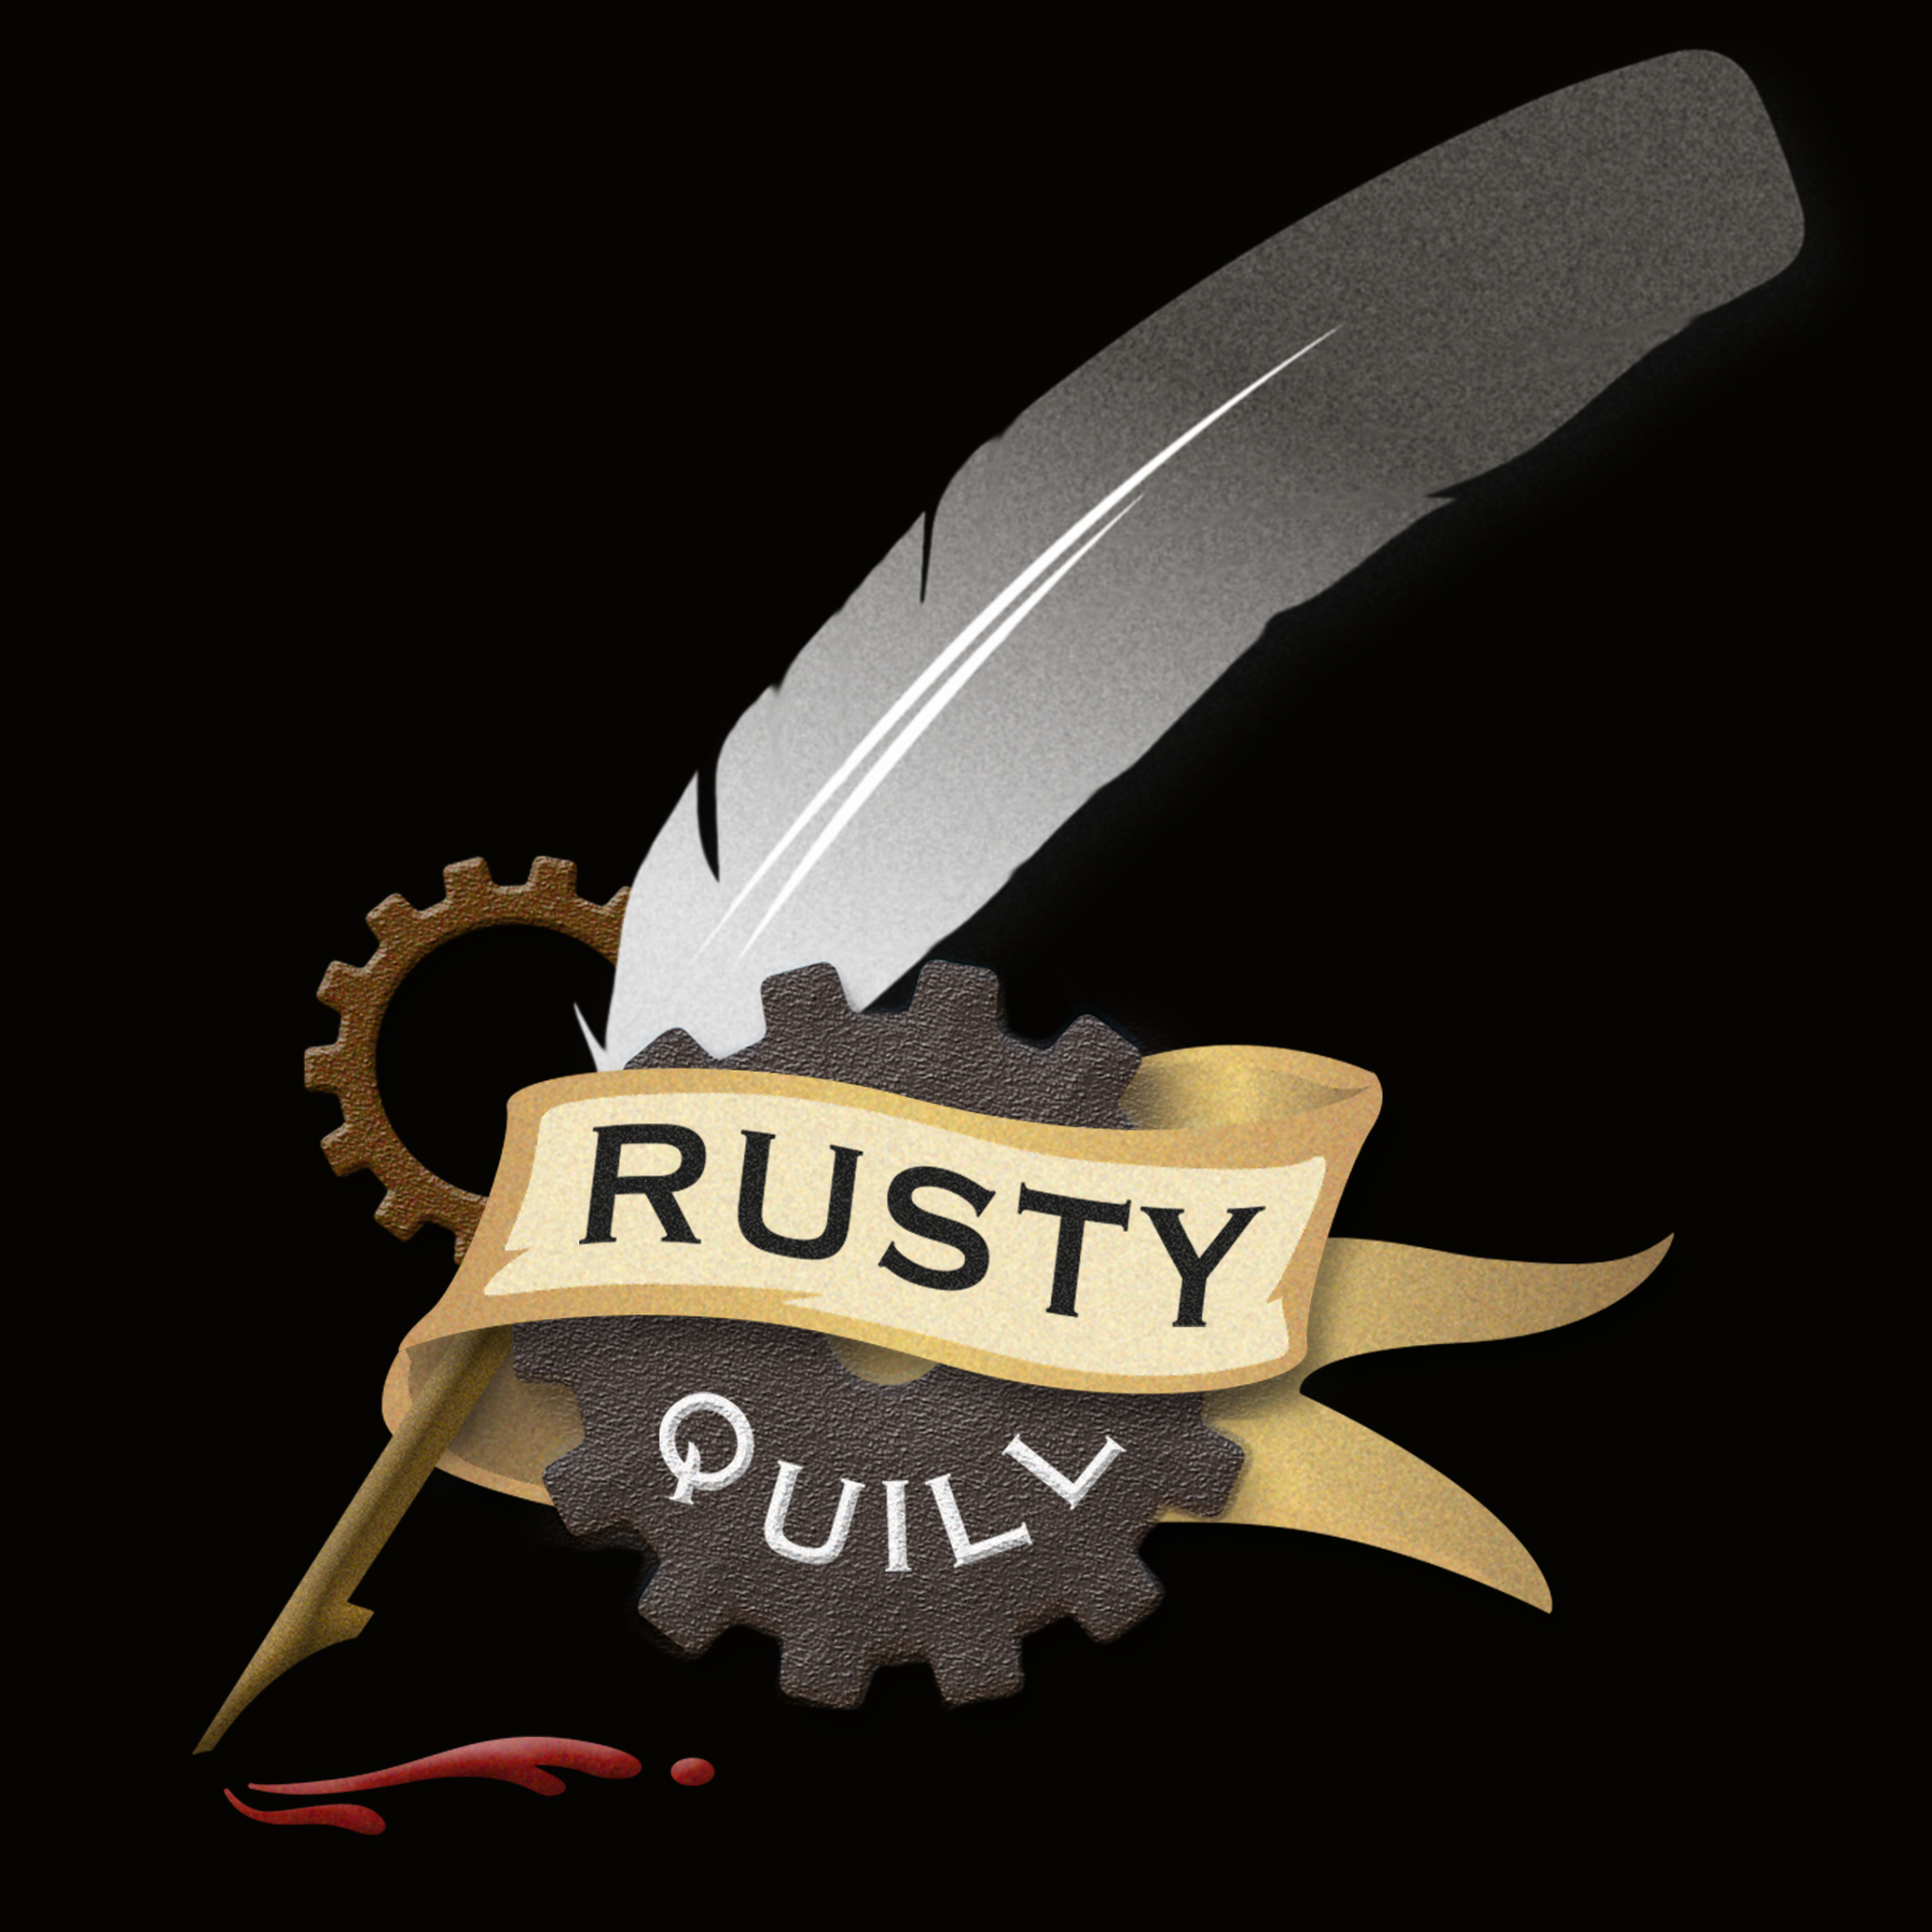 Rusty Quill